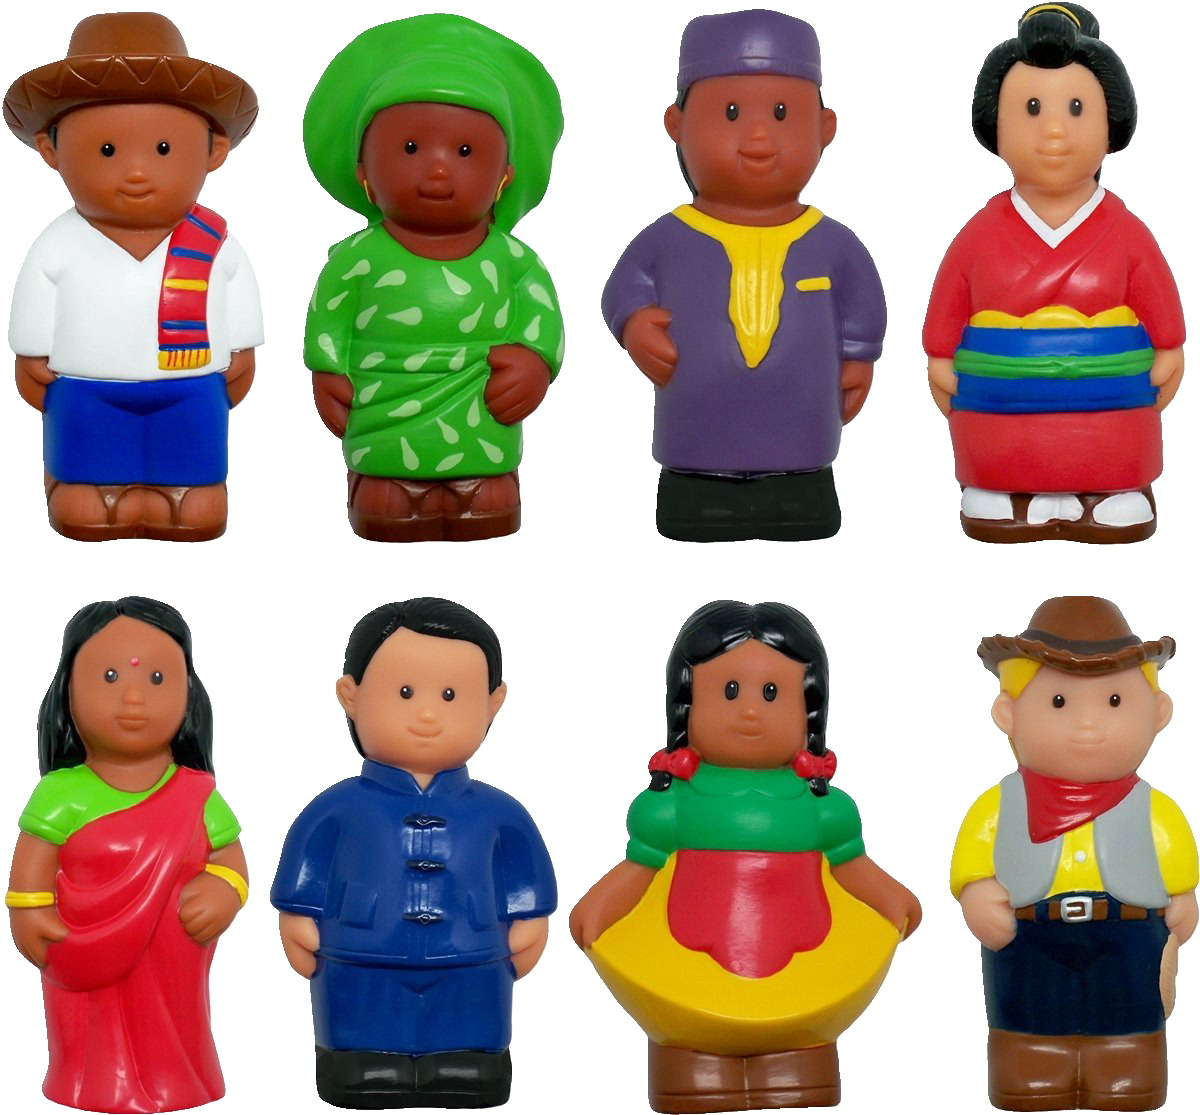 Get Ready Kids Around the World Figures, Multi-Ethnic, 5 Inches, Set of 8